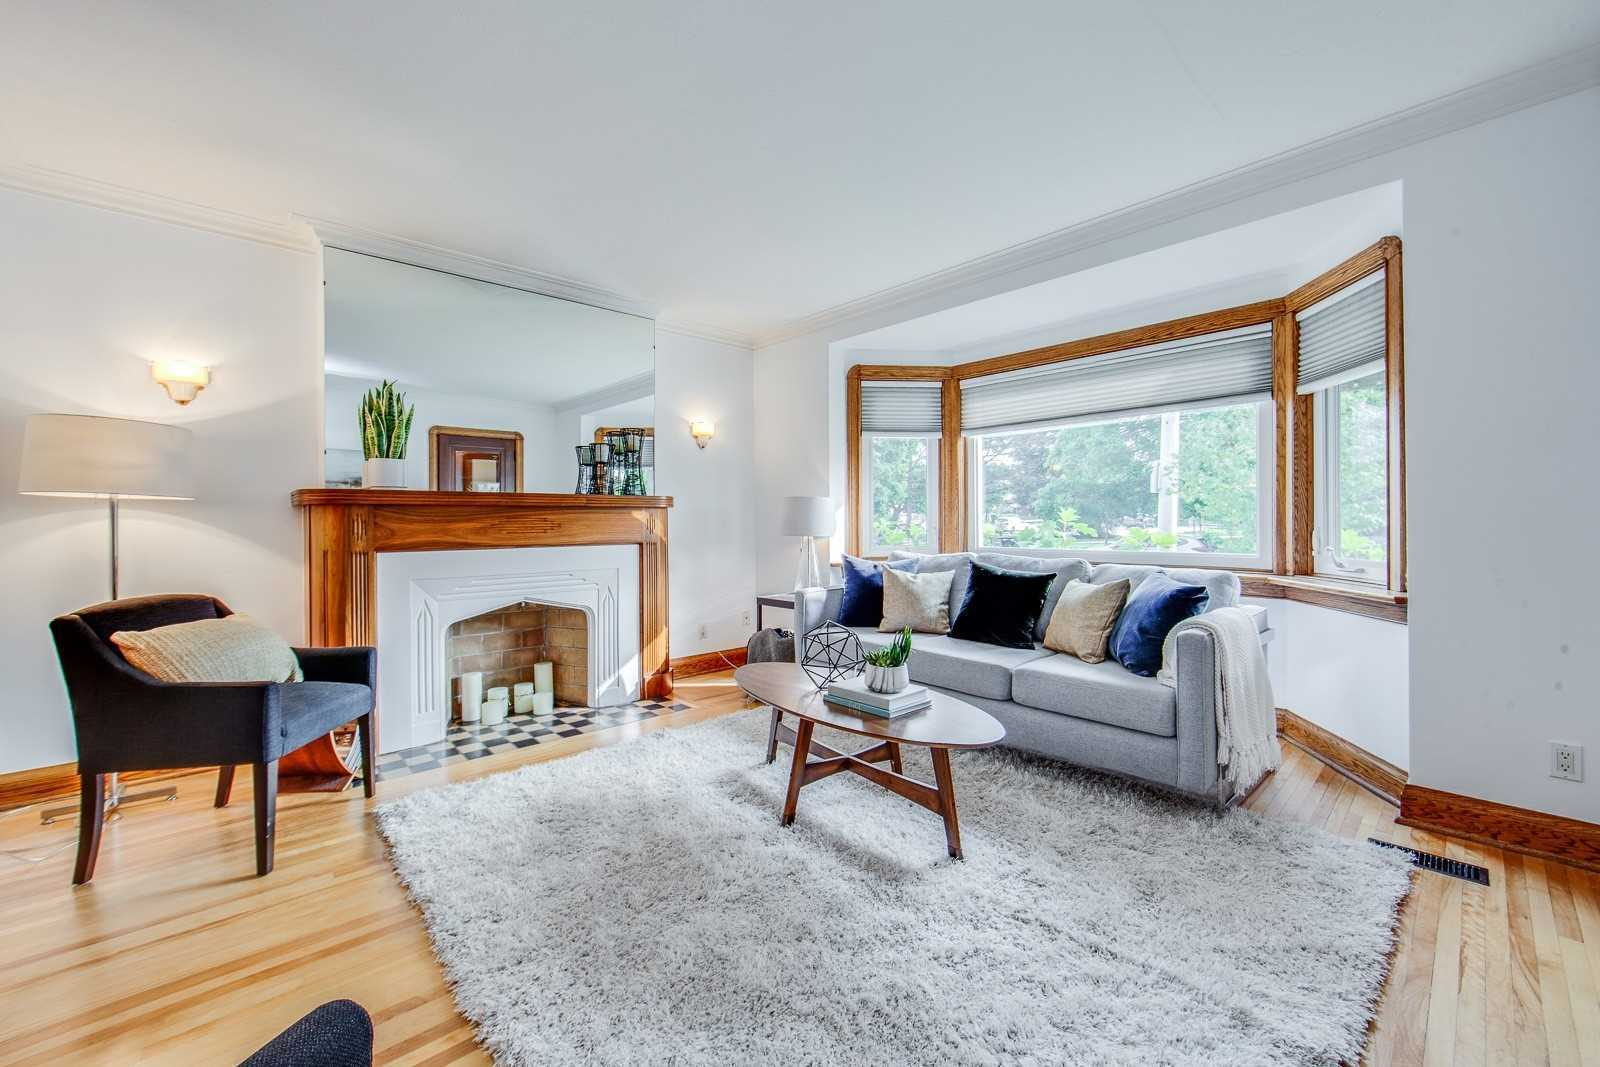 Upgraded & Immaculate East York Bungalow W/Great Main Flr Flow On A Lovely Wide Lot W/Private Drive&Attached Garage.Super-Spacious Liv Rm W/Fireplace,Hardwood&Cozy Bay Window,Family-Size Sep.Din. Rm&Generous Bdrms.A Bsmt Rec. Rm Perfect For Game/Movie Nights,Extra Bdrm&A Ton Of Storage.Ready To Move Into Or Perfect For Those Wishing To Build/Expand(Reno Plans Avail). Steps To Transit,Library,Hospital,Daycare,Farmer's Market Across,Dieppe Park&Shops On Coxwell